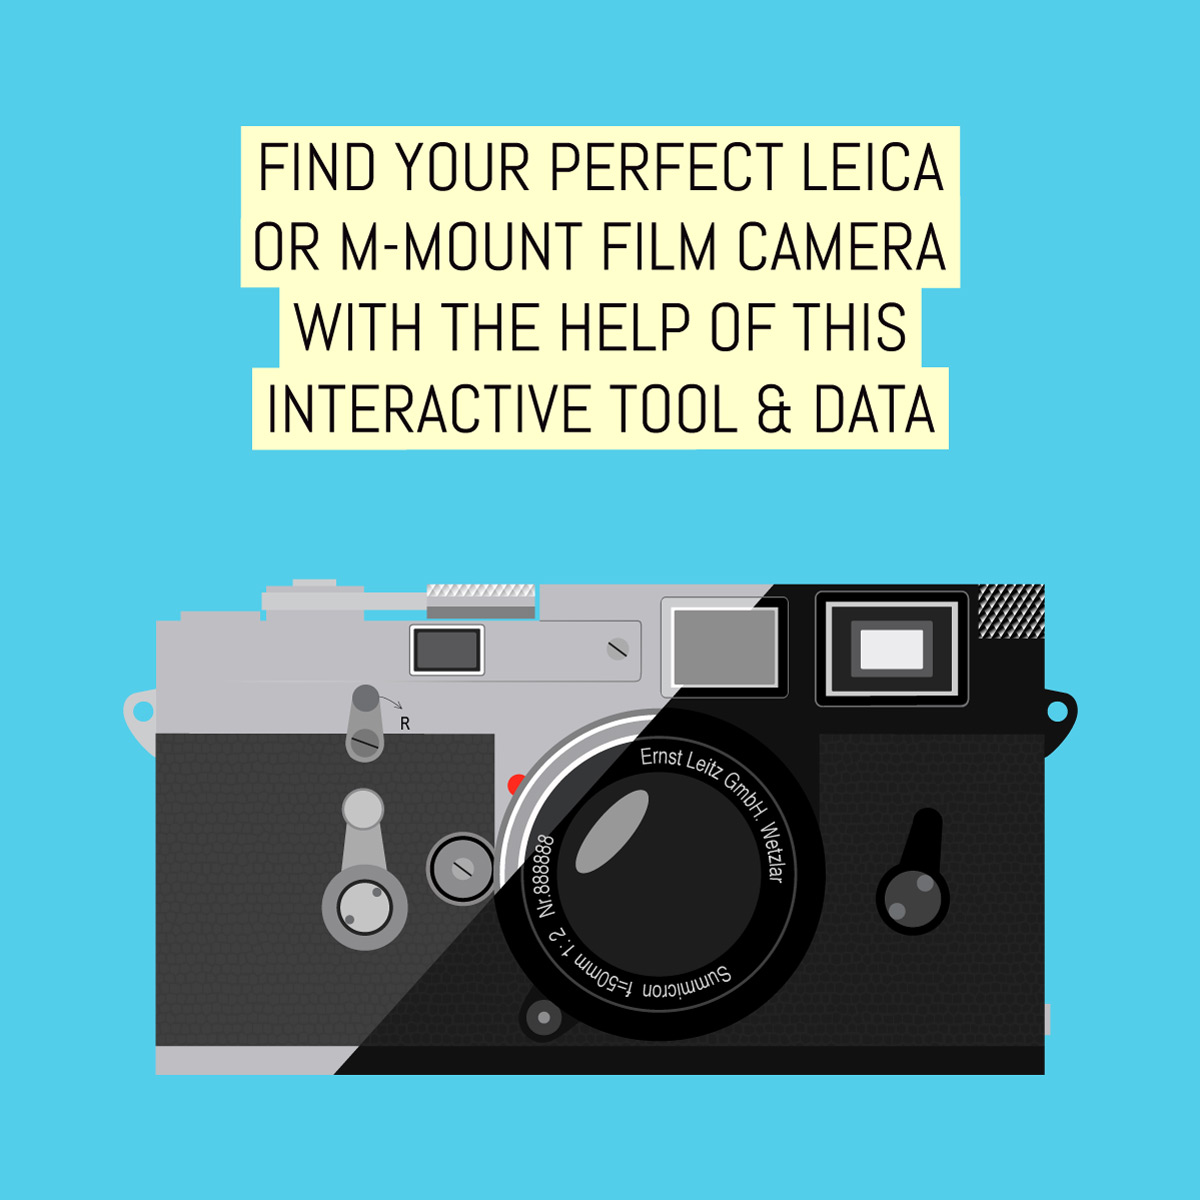 Find your perfect Leica or M-mount film camera with the help of this interactive tool & reference data